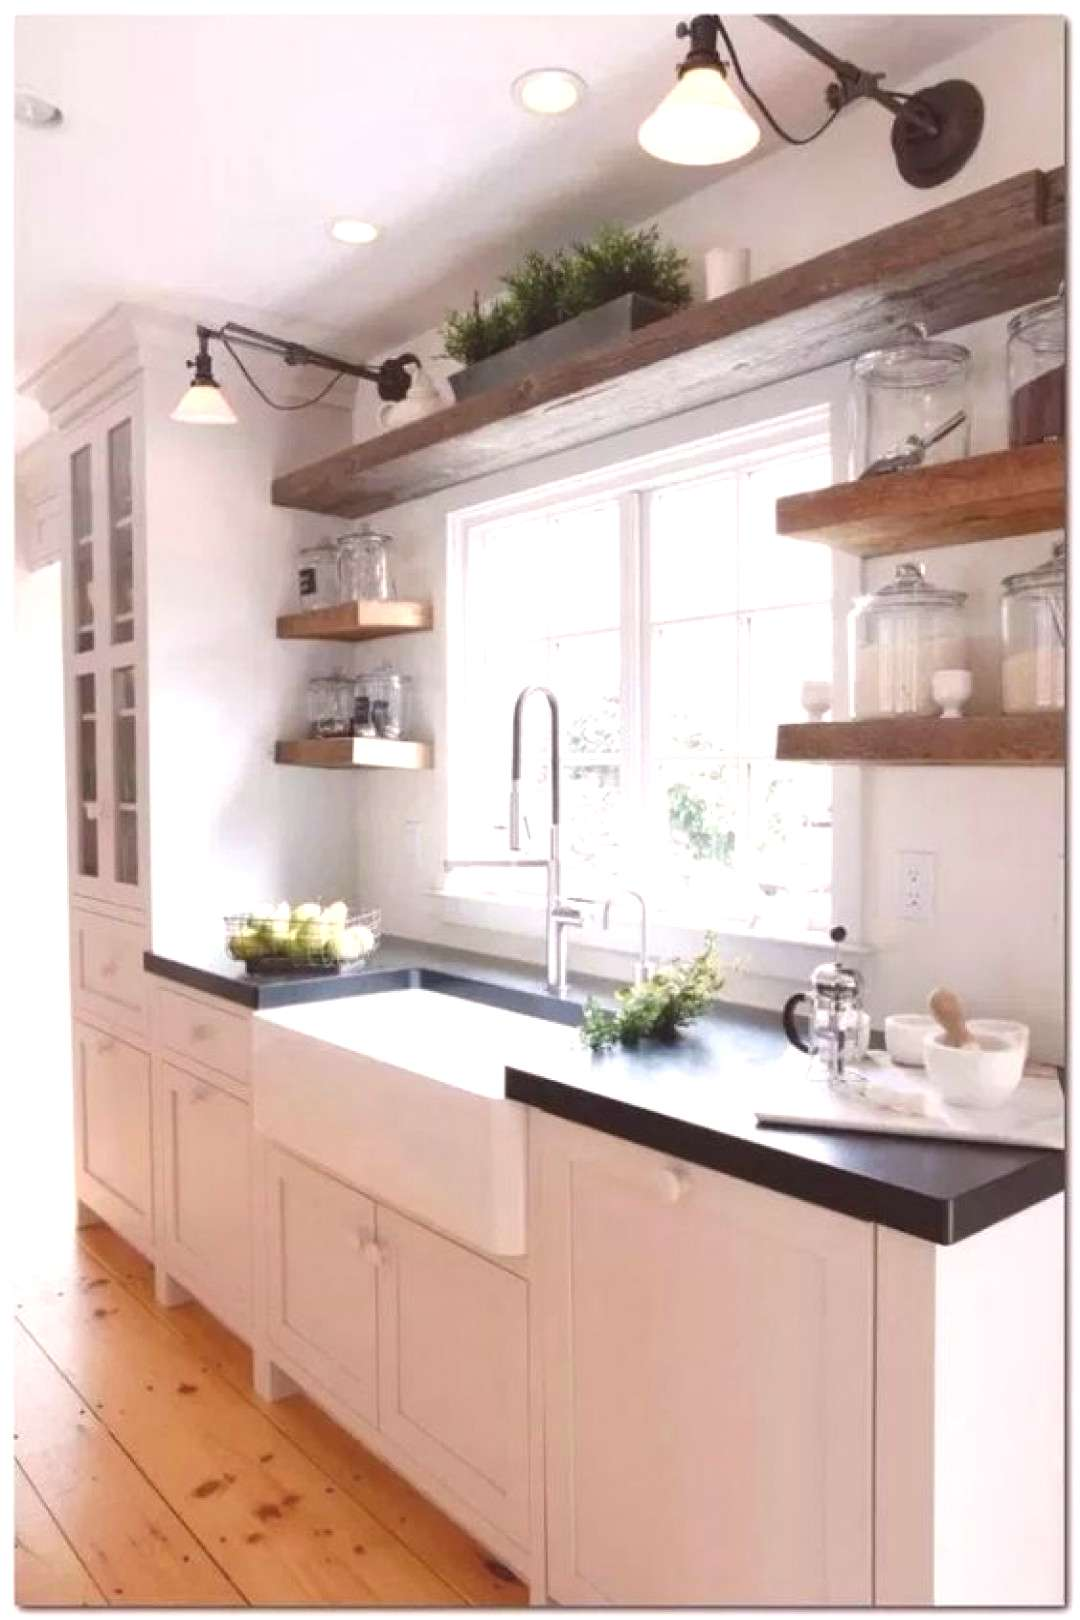 Cabinets and Cupboar Cabinets and Cupboards 20487 Storage Cabinets For The Kitchen Pantry Tall 4-D